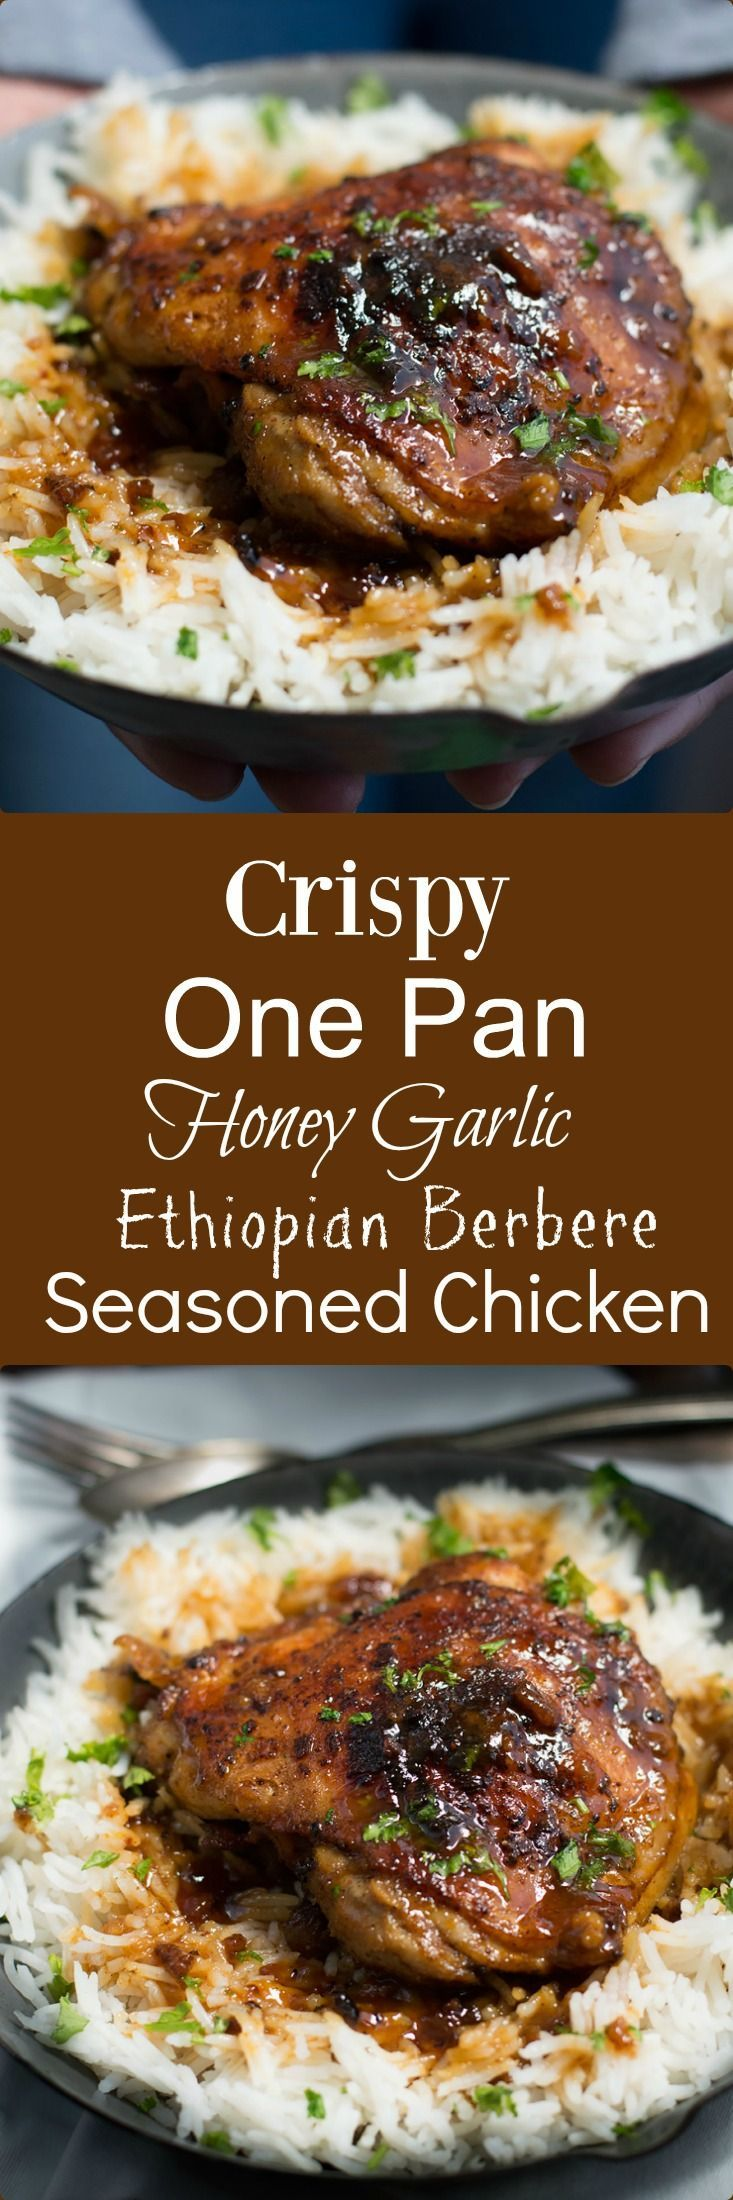 Crispy One Pan Honey Garlic Ethiopian Berbere Chicken Thighs have a delicious crispy skin with a sweet and spicy garlic sauce.